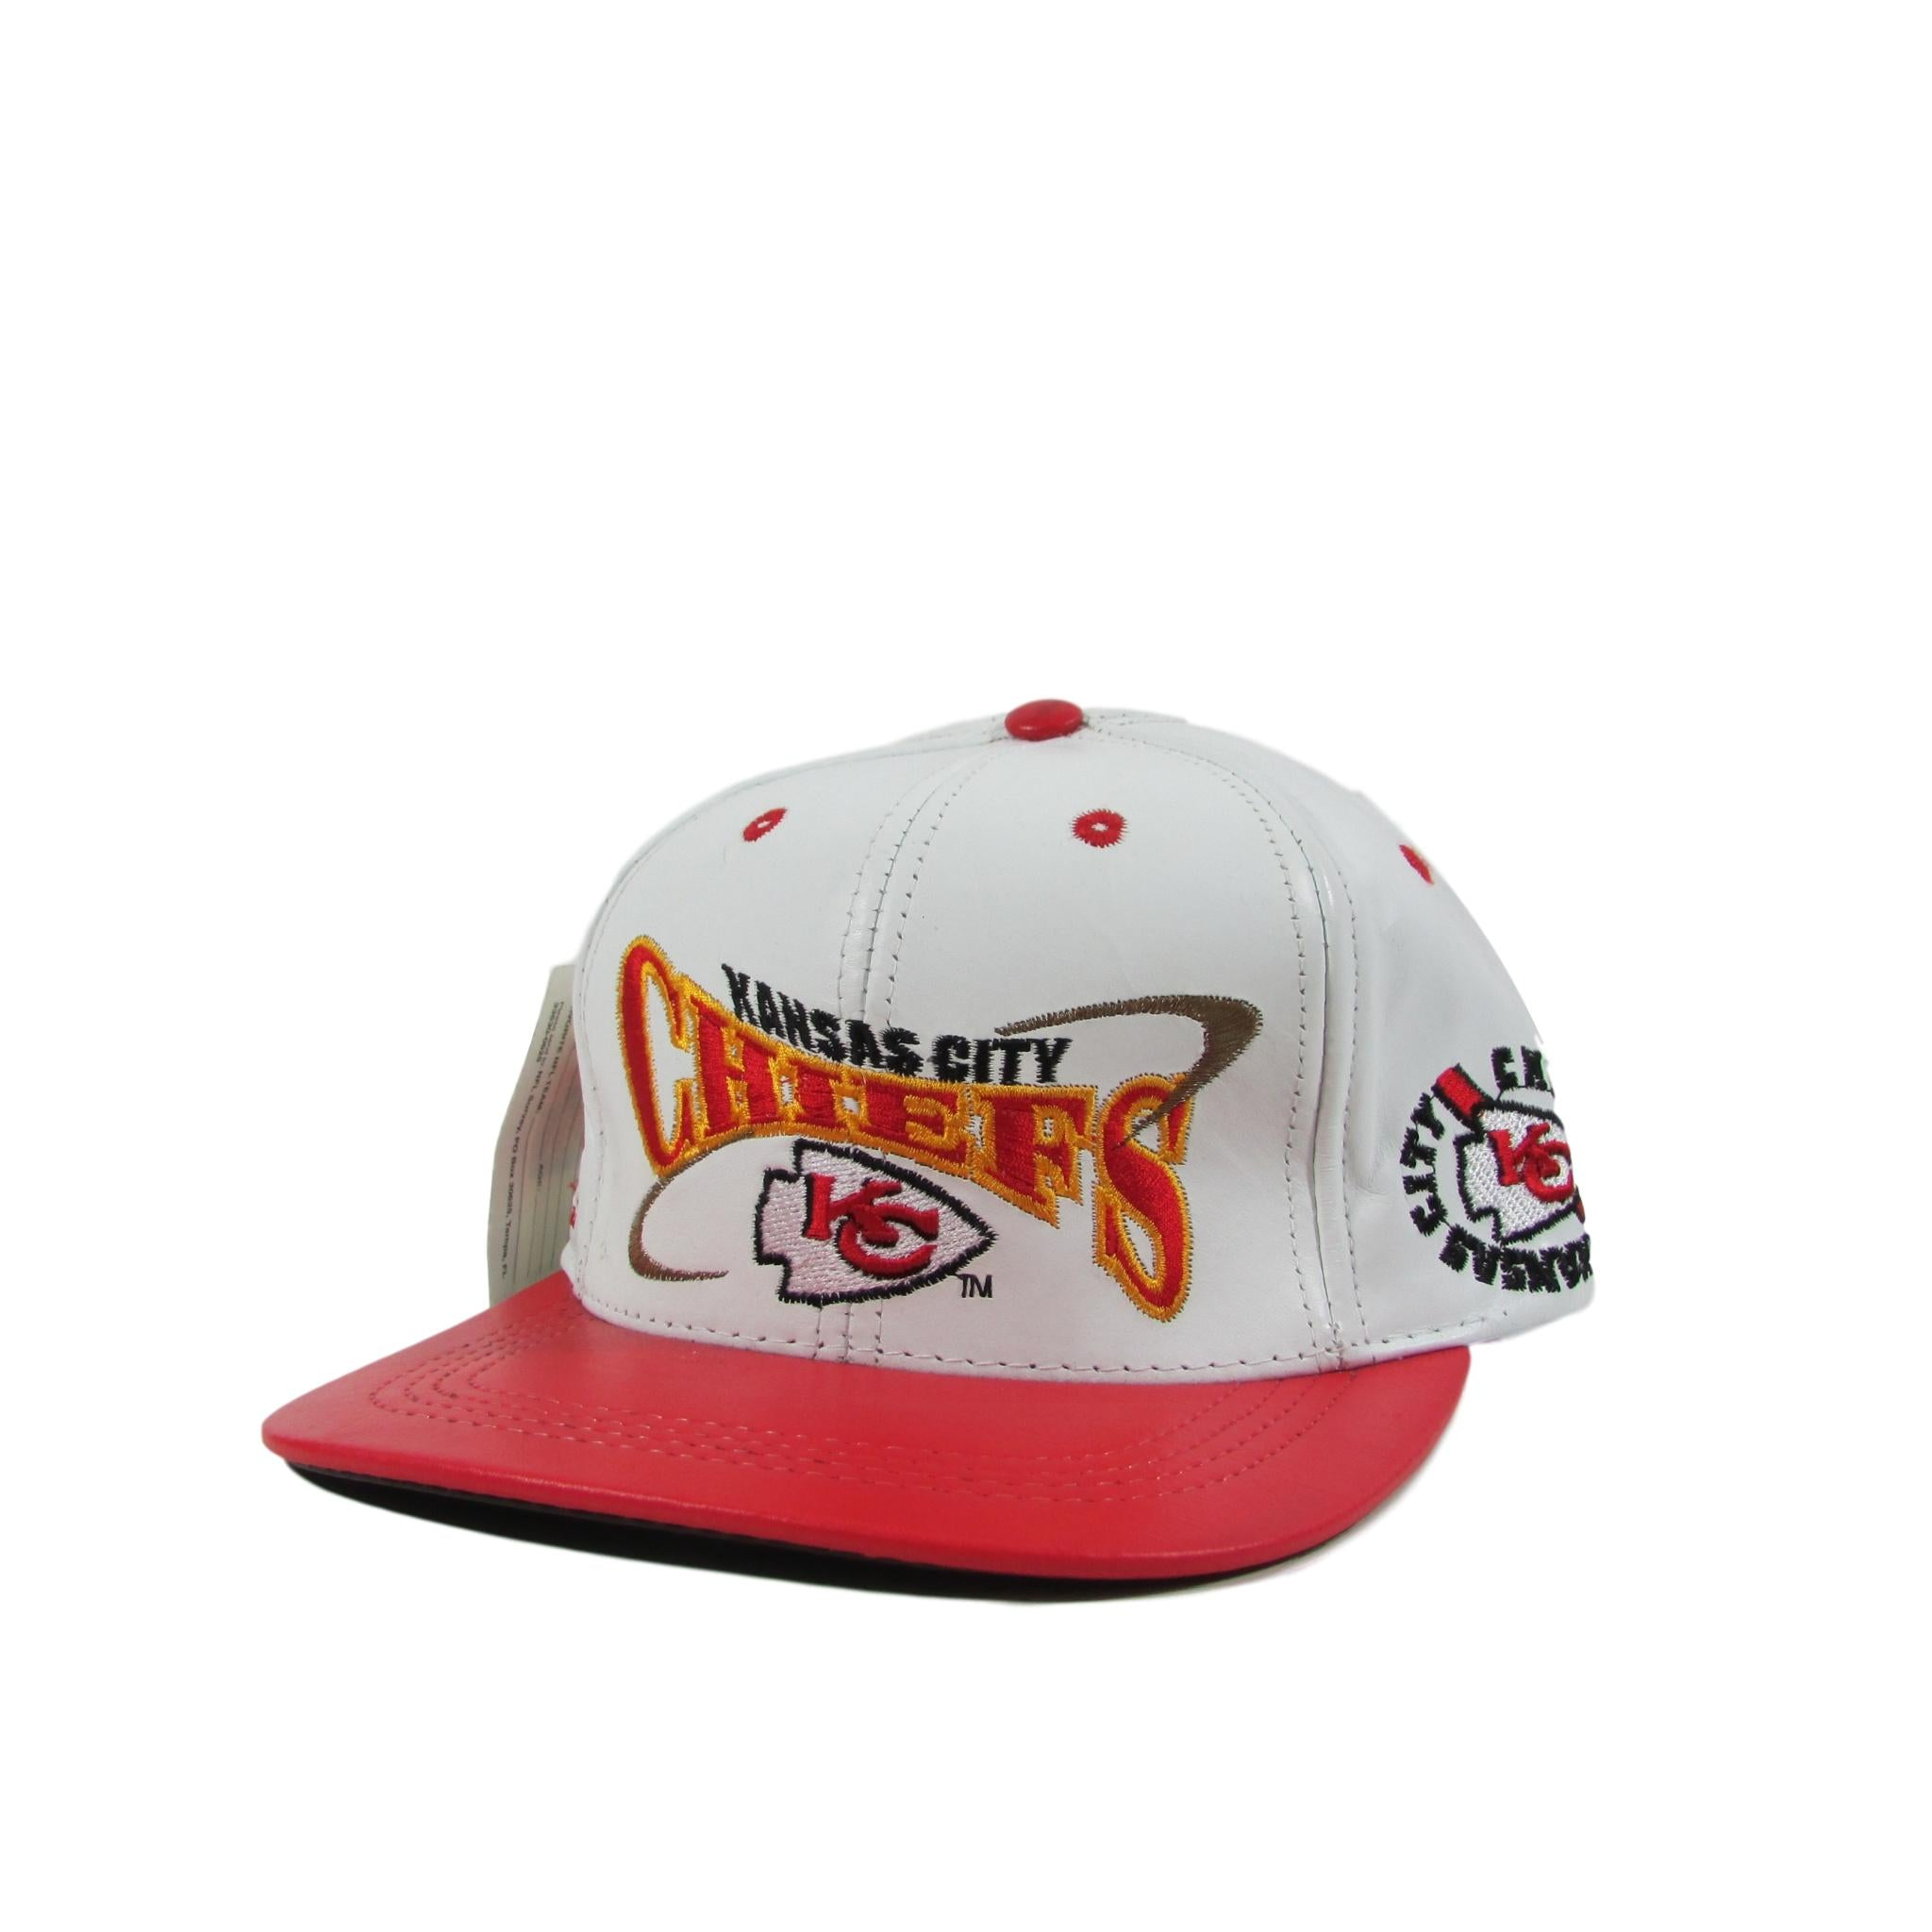 Kansas City Chiefs Deadstock Leather Football Strapback Hat Pro Style Team NFL